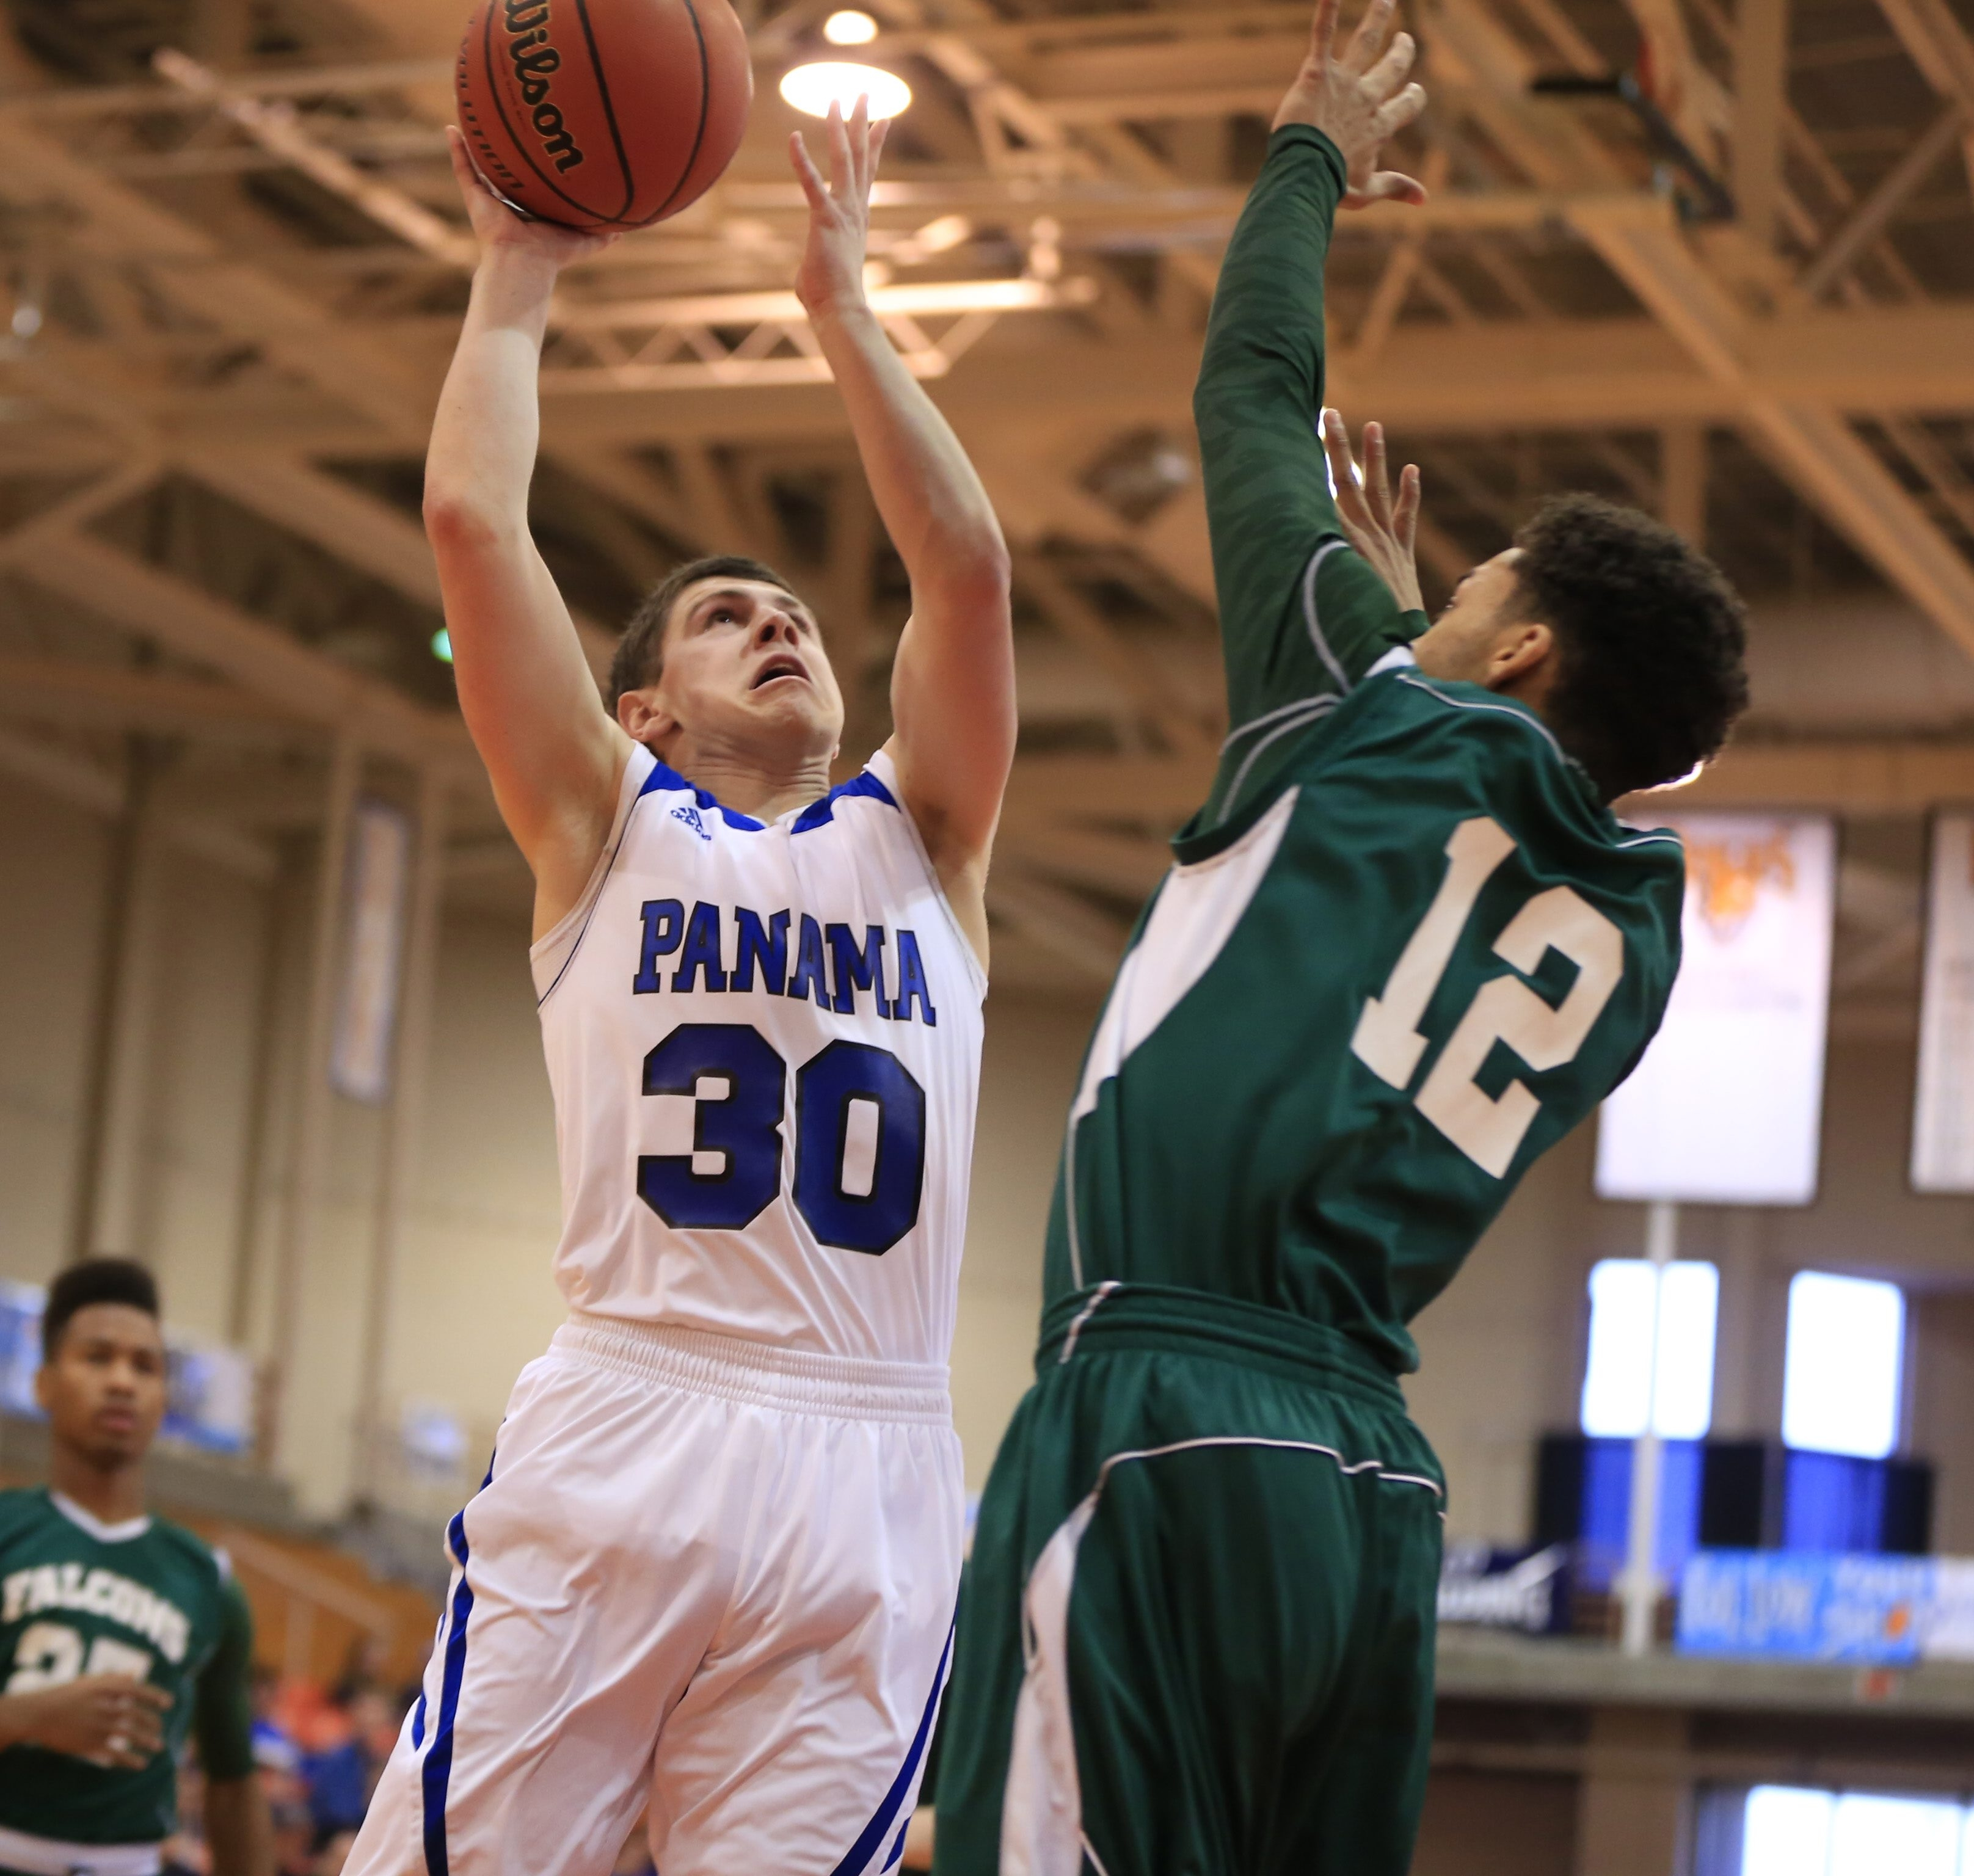 Panama's Josh Odell goes for two of his 22 points in a Far West Regional win over C.G. Finney.